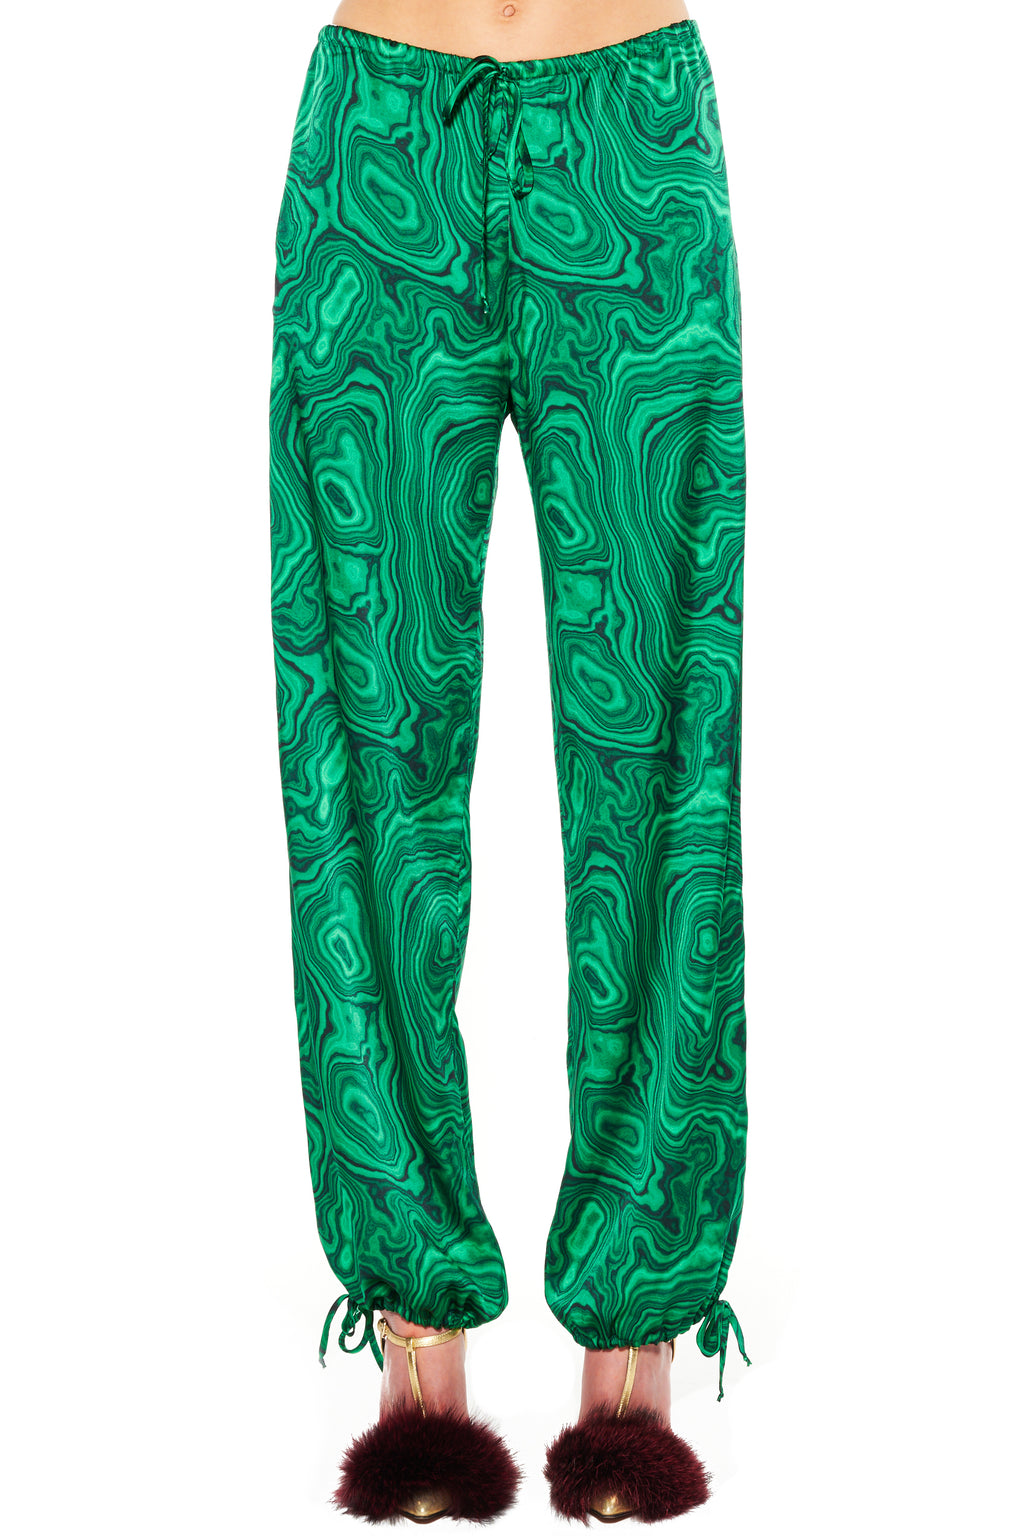 'HIGH AS A MALACHITE' DRAWSTRING PANTS - Women's Bottoms - Libertine